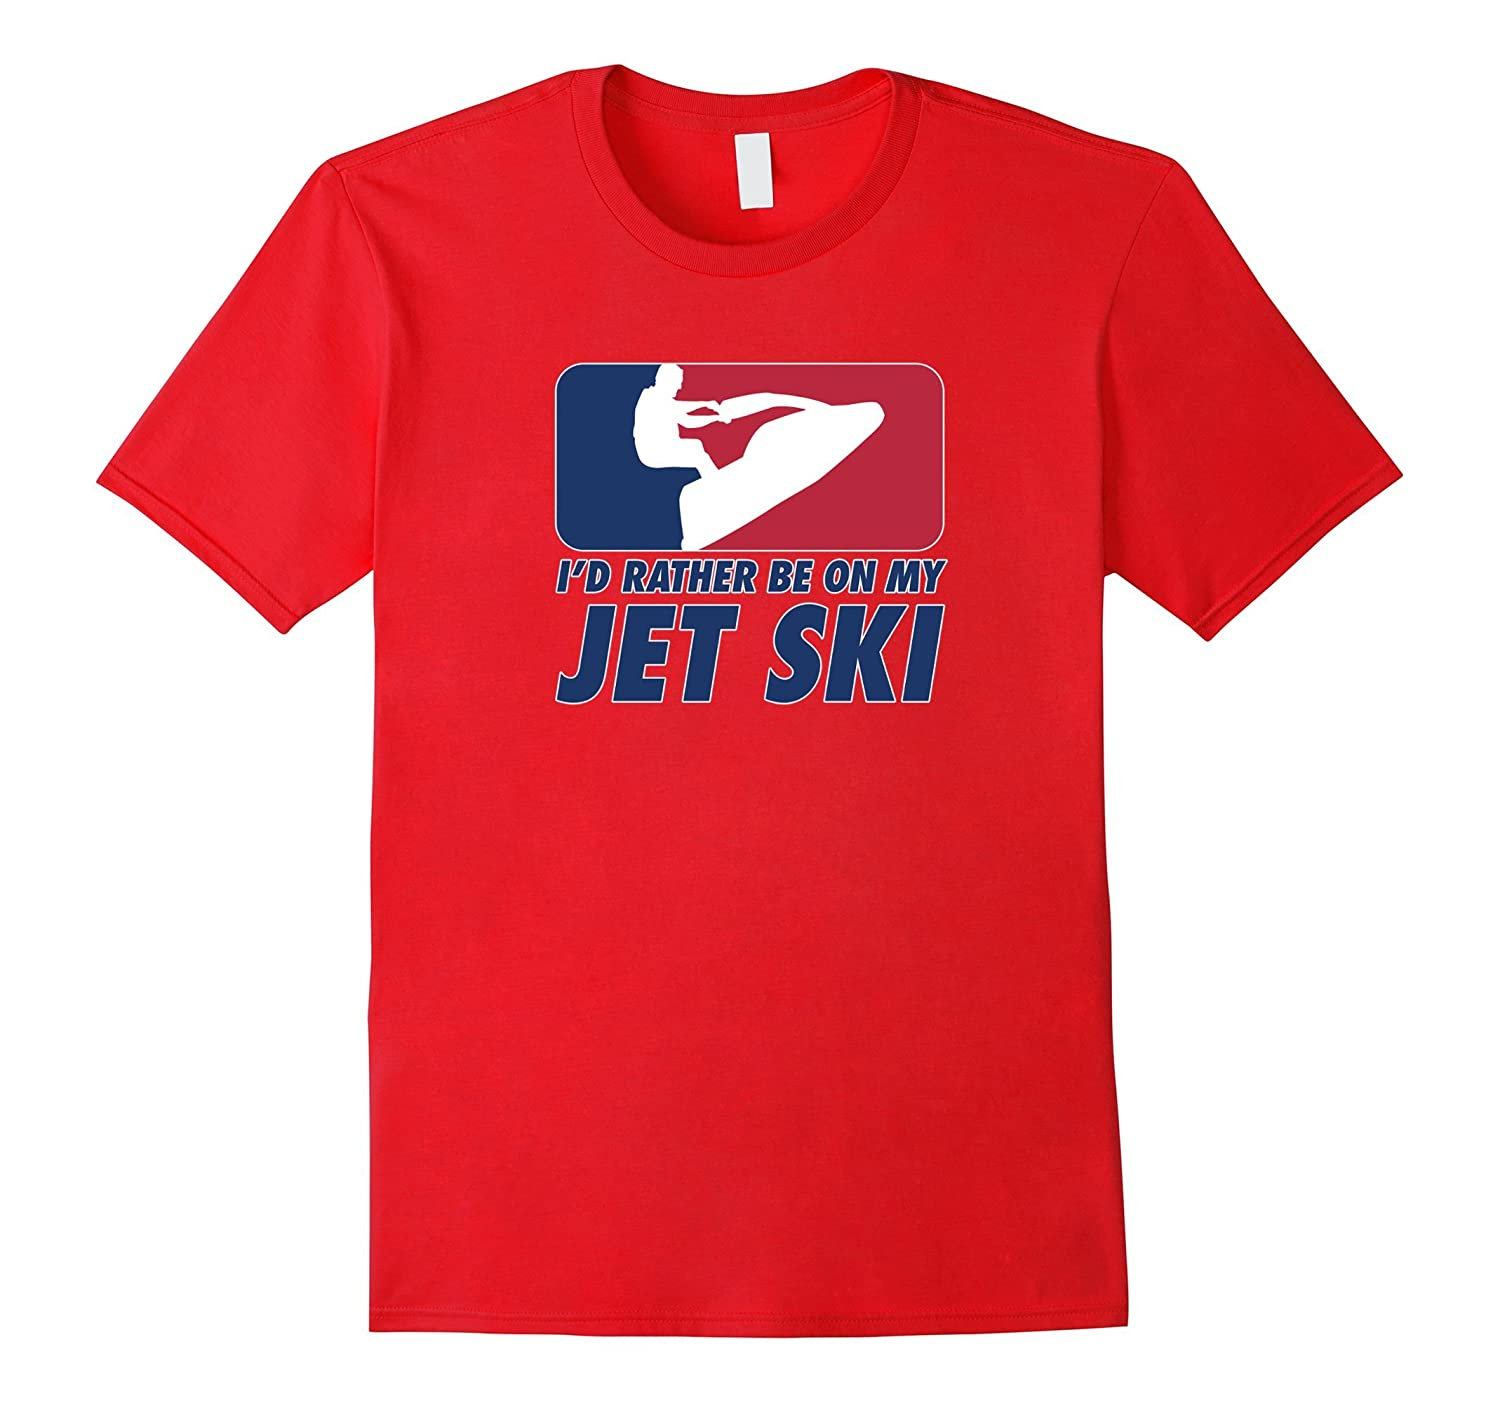 ID RATHER BE ON MY JET SKI TSHIRT-T-Shirt